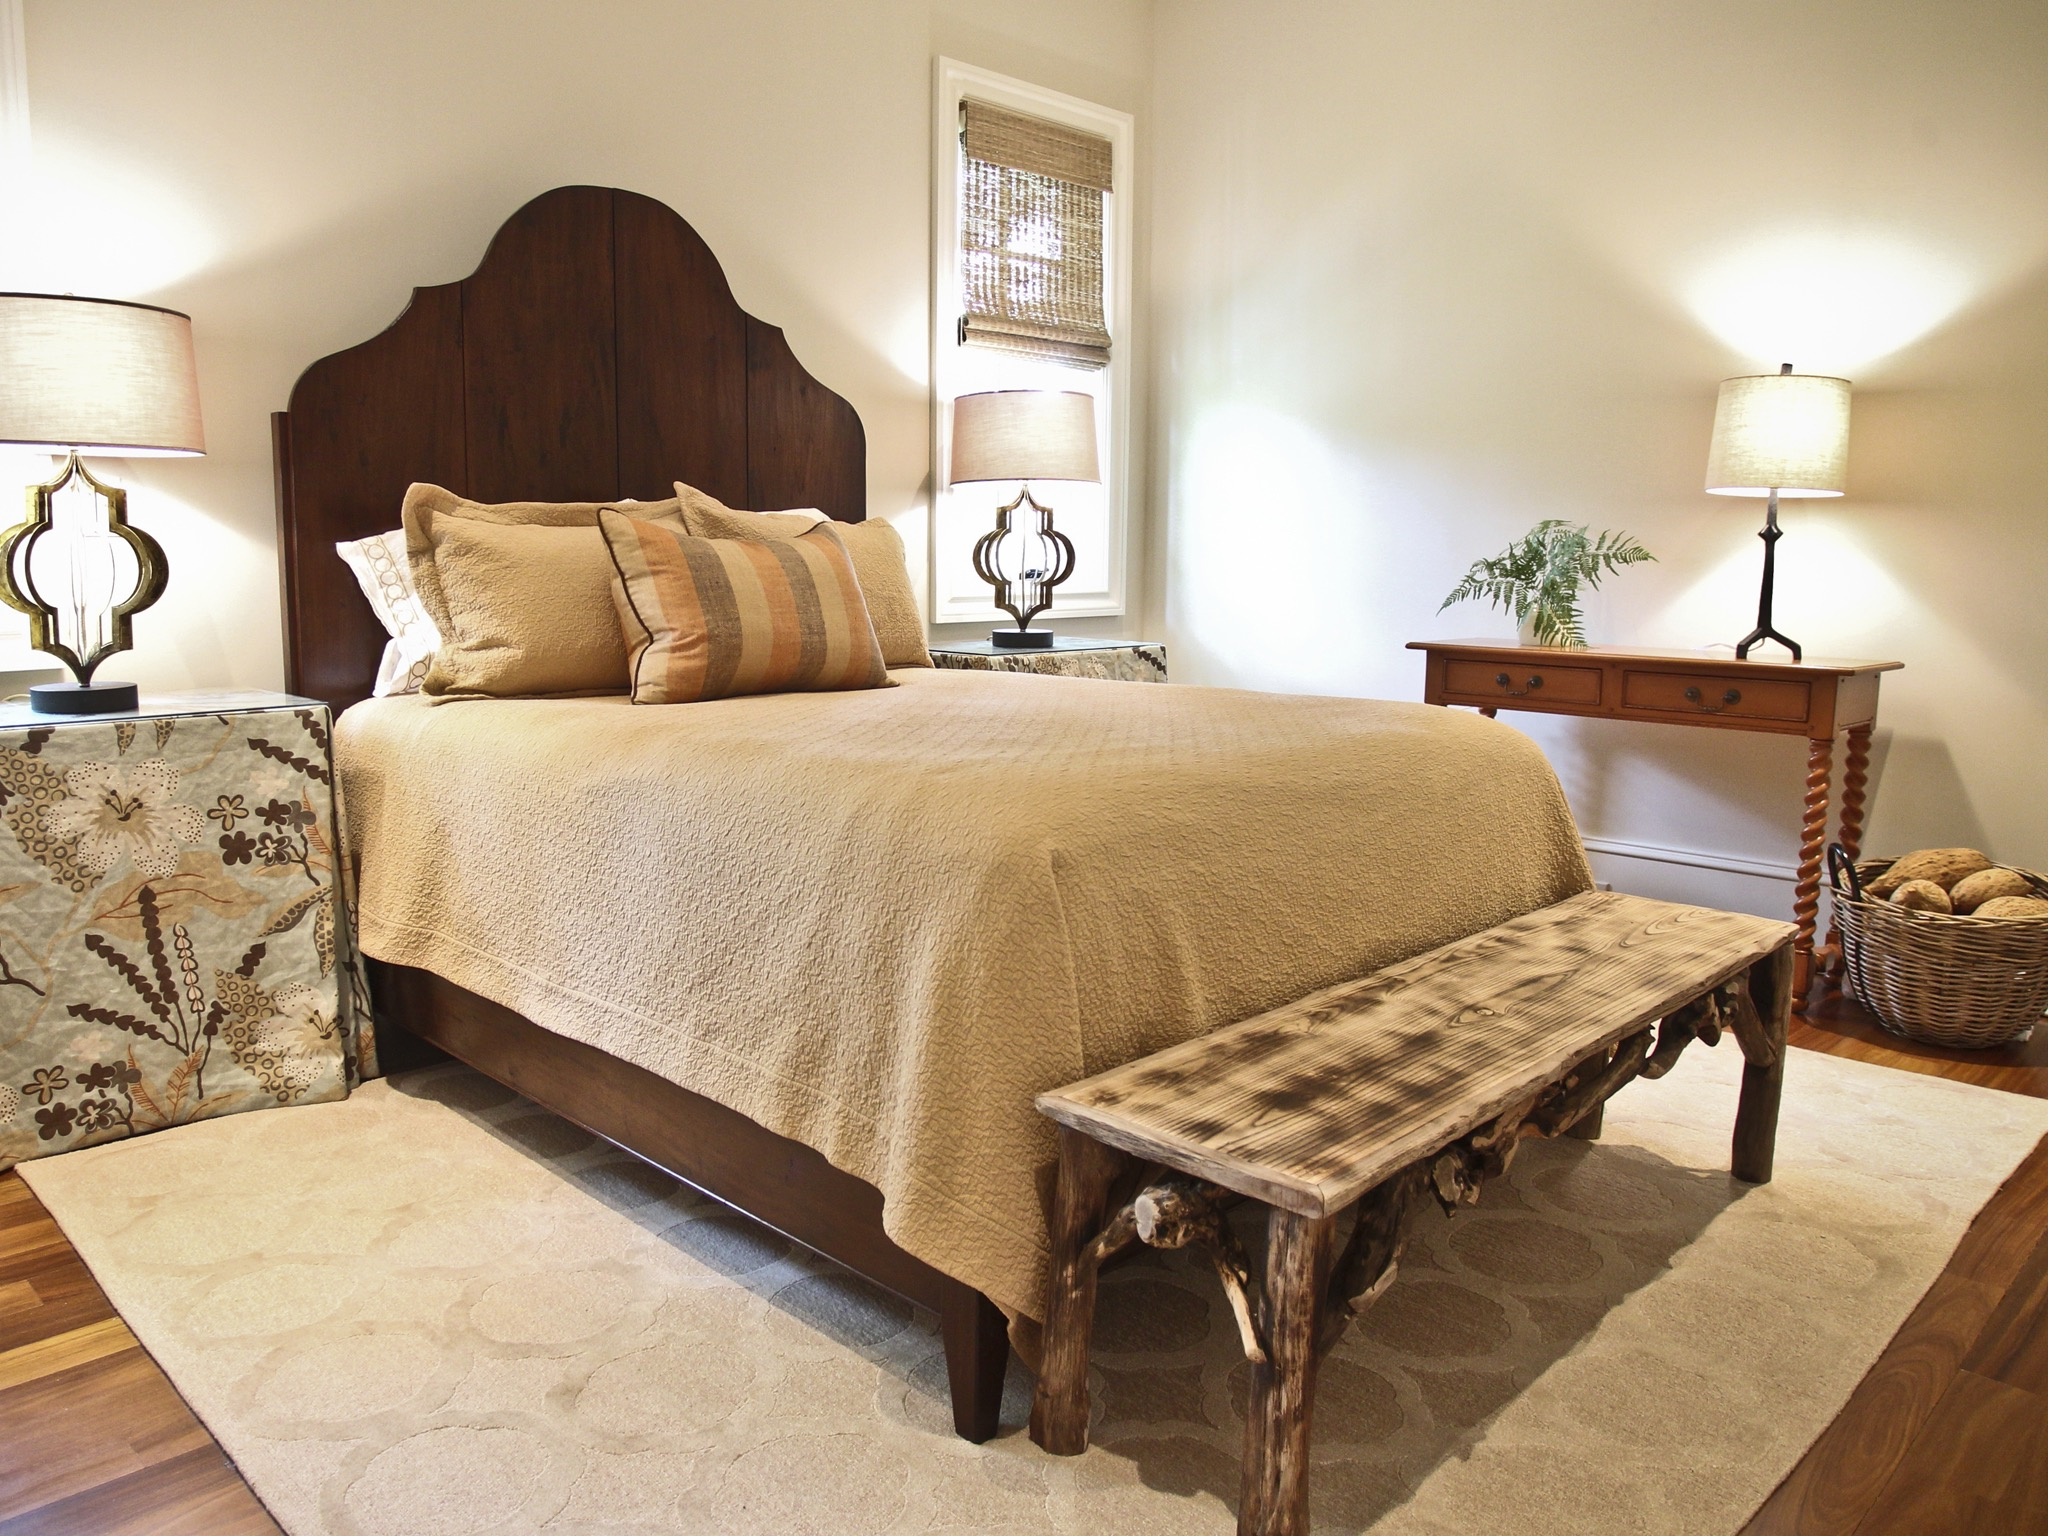 Victorian Bedroom With Distressed Bench And Skirted Tables (View 25 of 30)